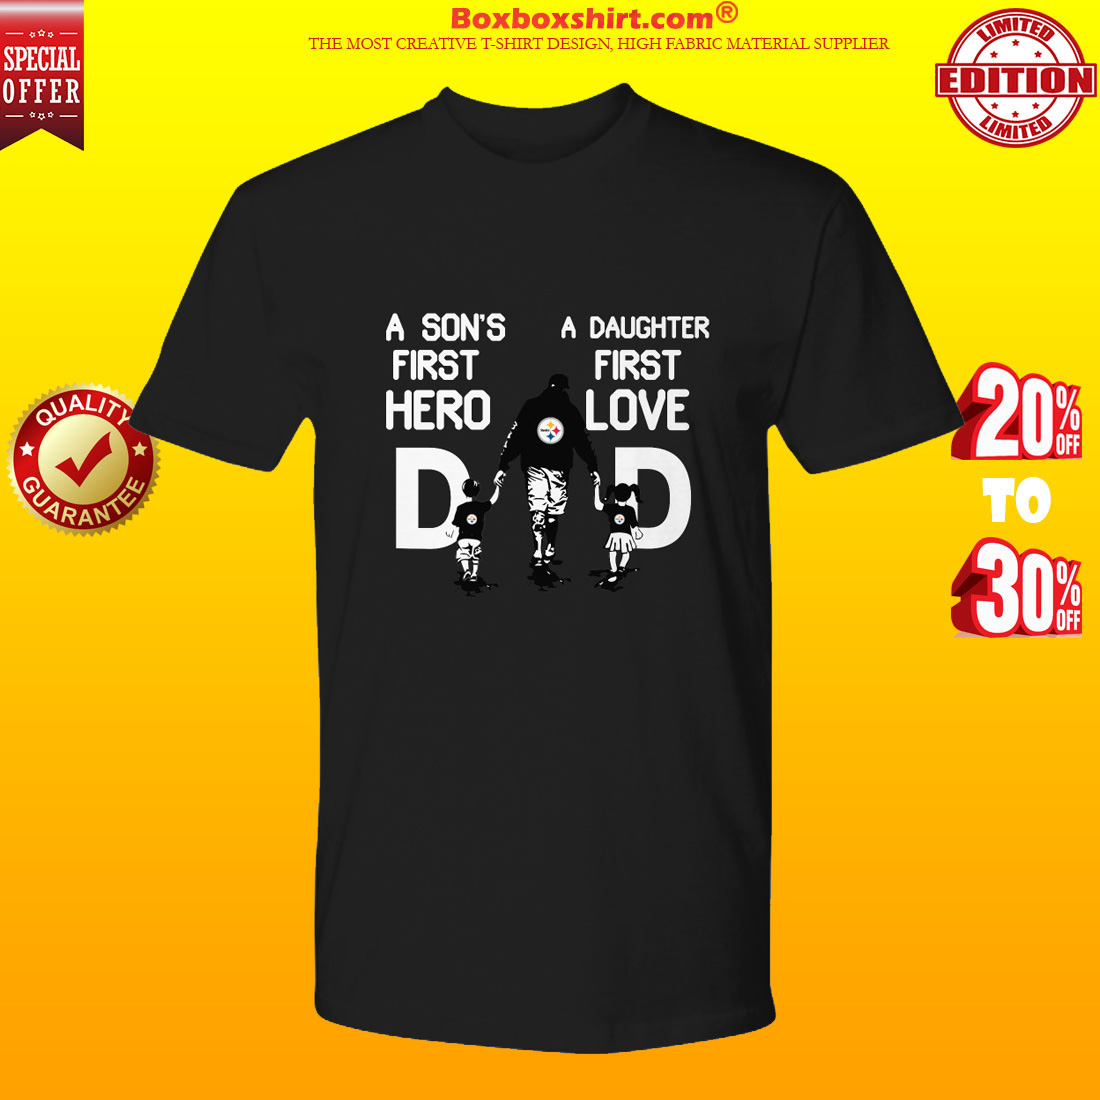 Pittsburgh Steelers dad a son's first hero a daughter first love premium tee shirt